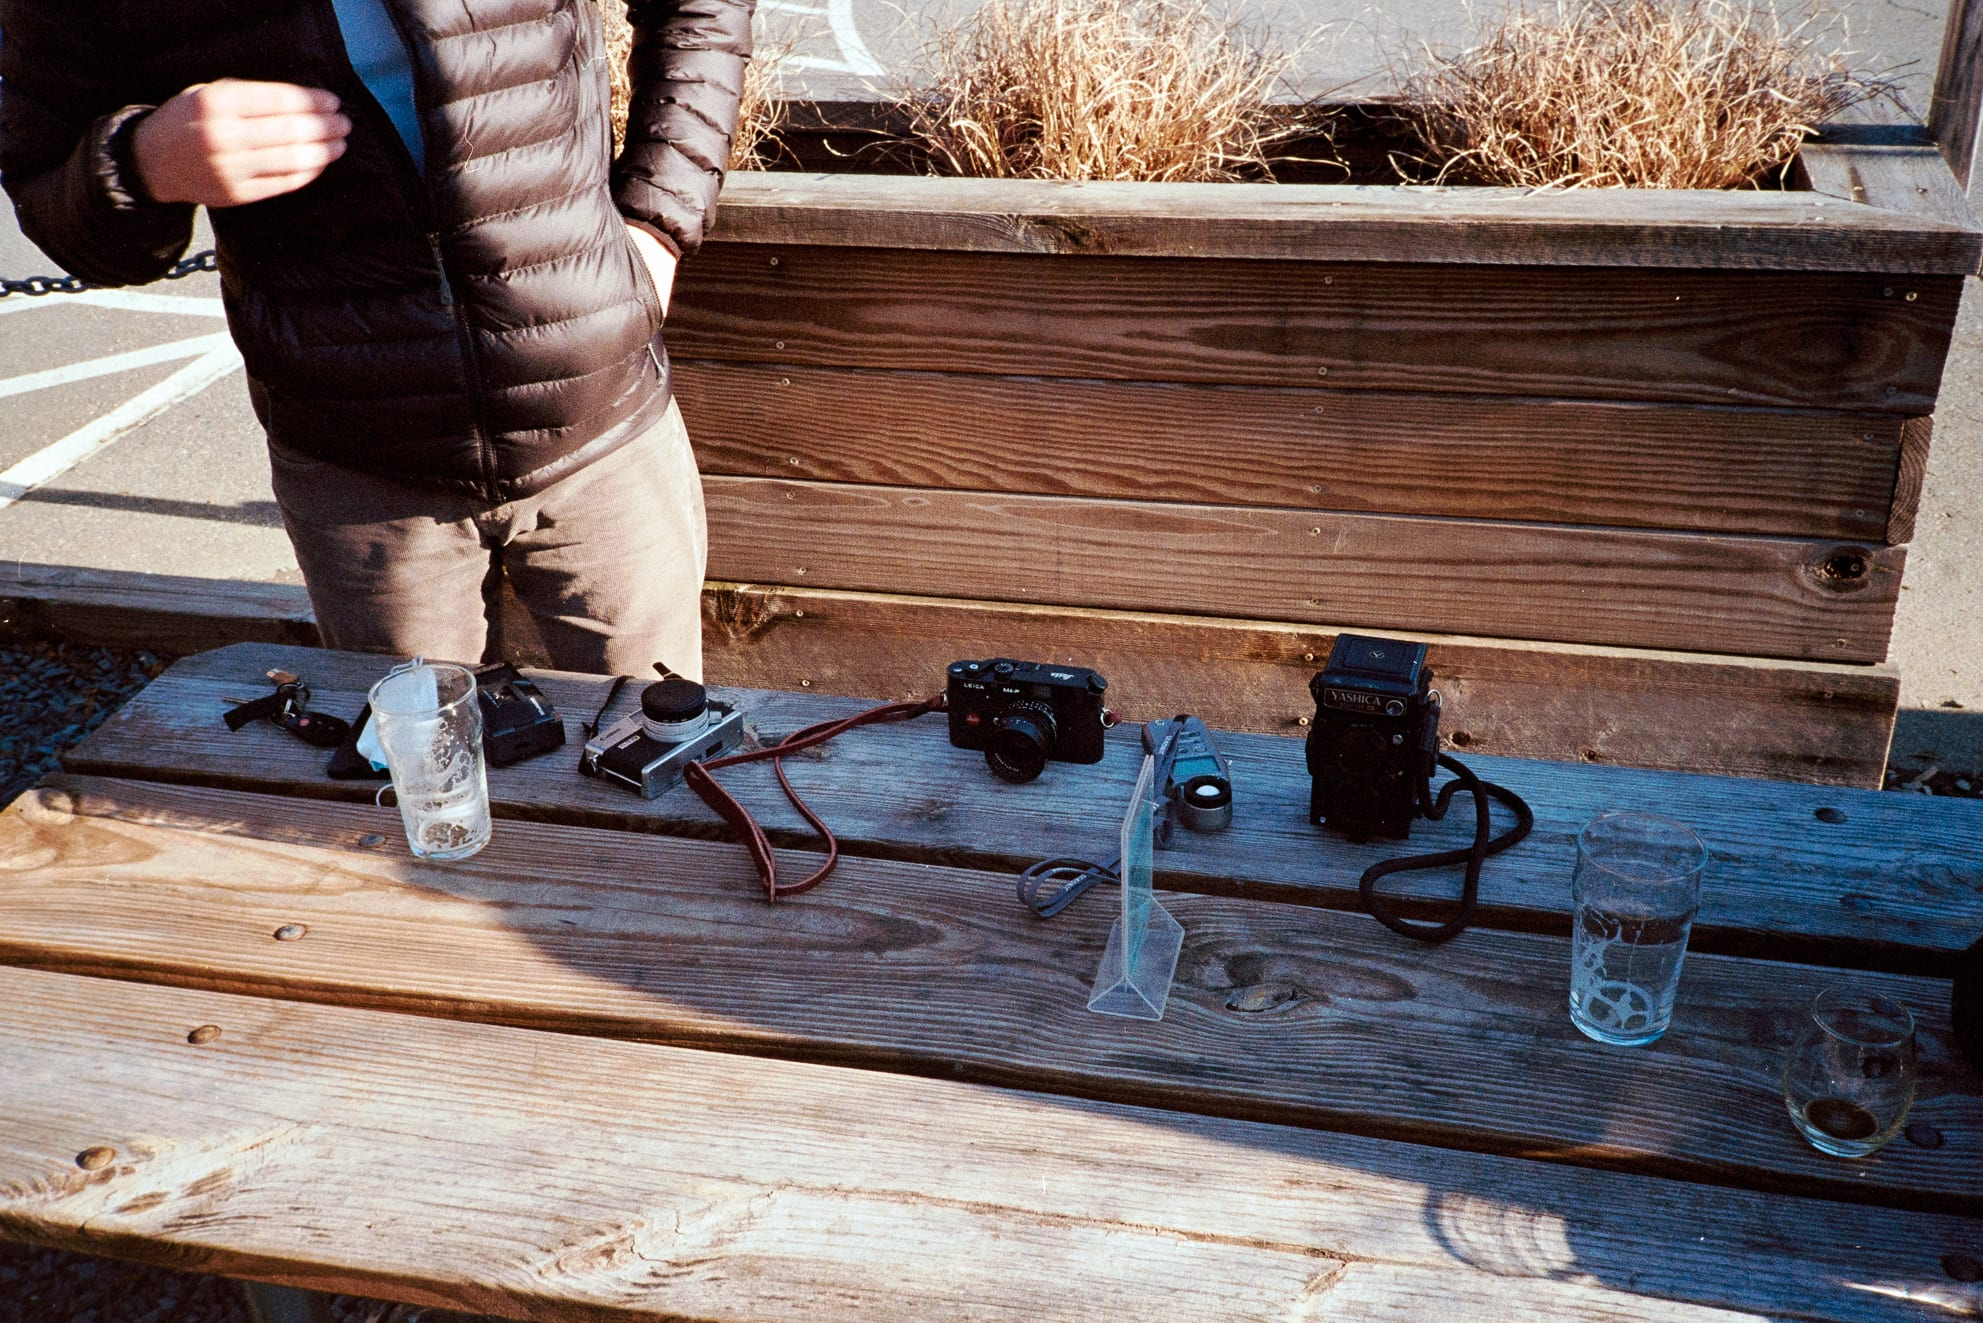 picnic table with various cameras and drinks